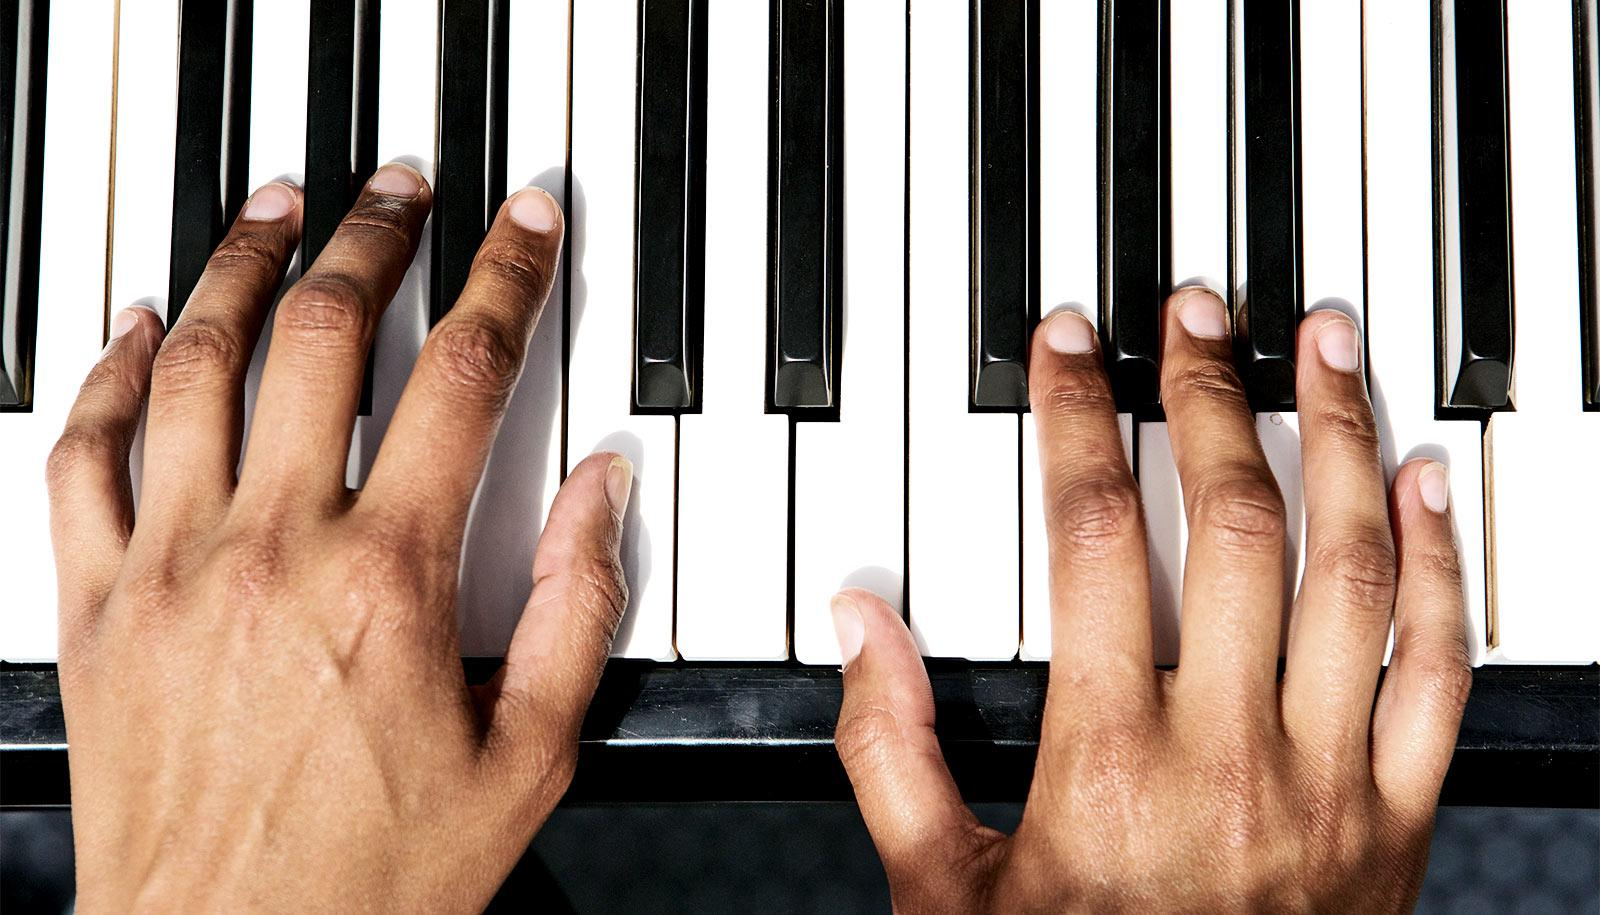 Two hands sit on piano keys